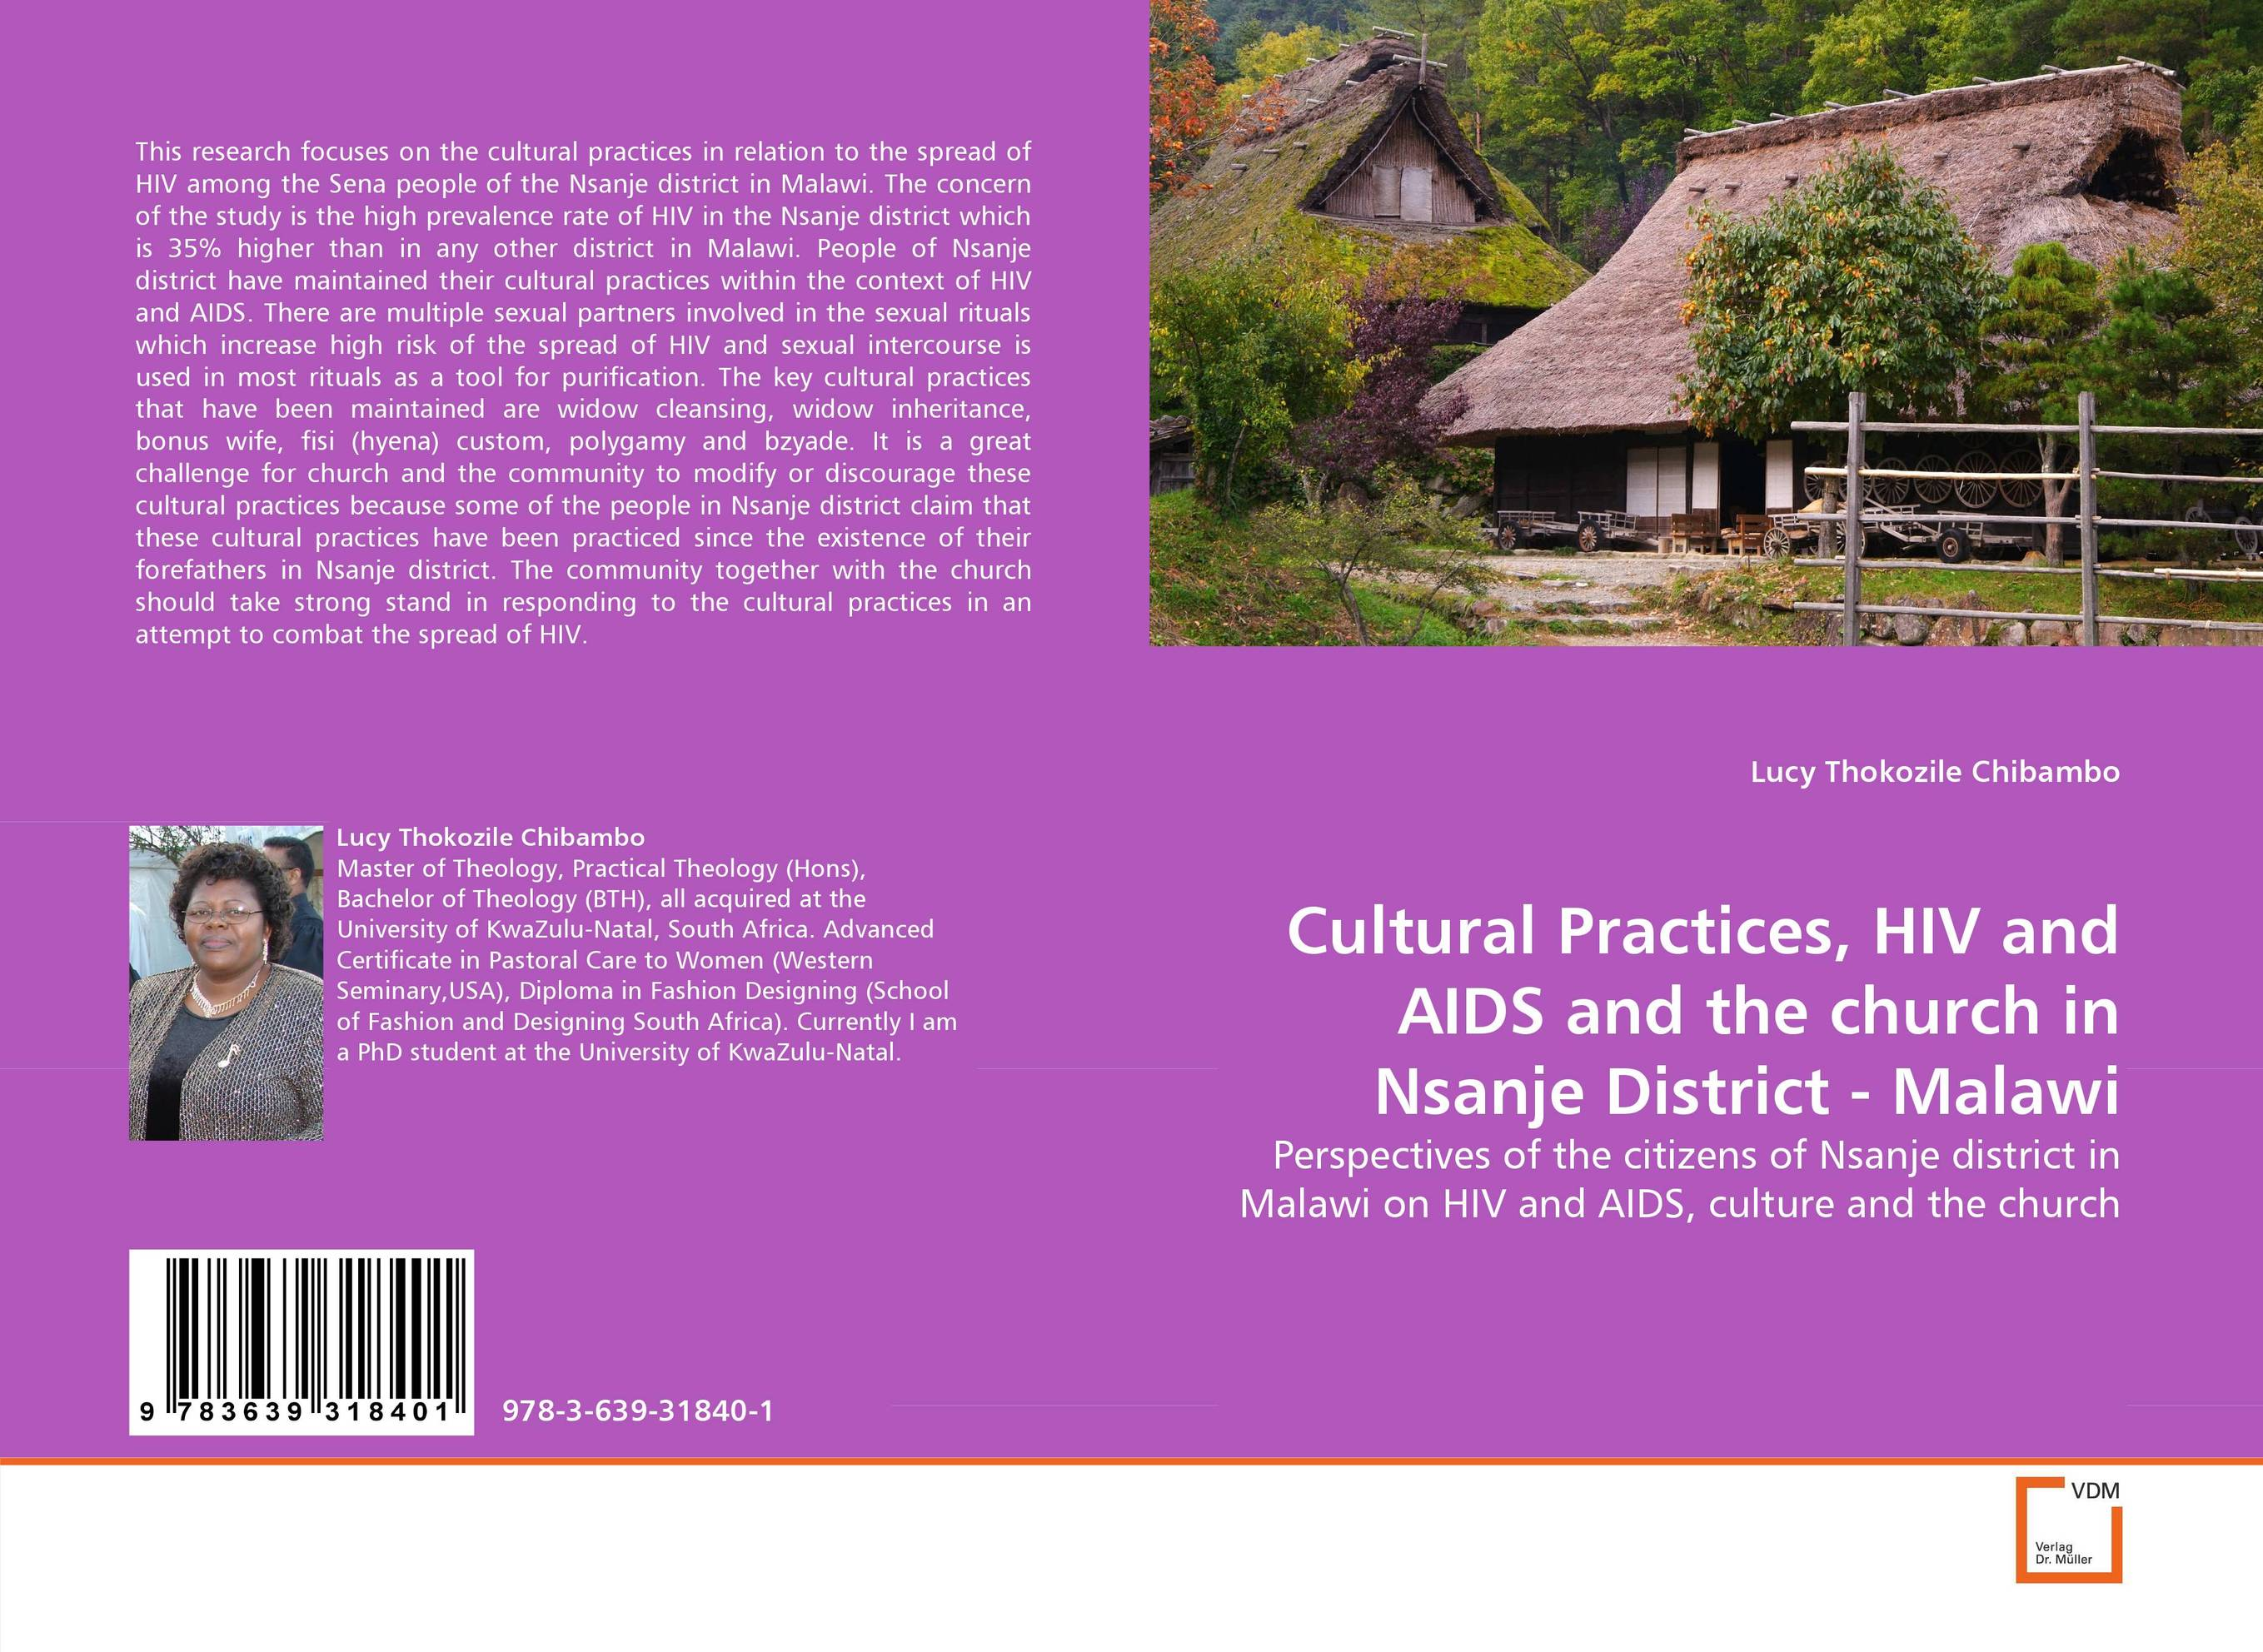 Cultural Practices, HIV and AIDS and the church in Nsanje District - Malawi